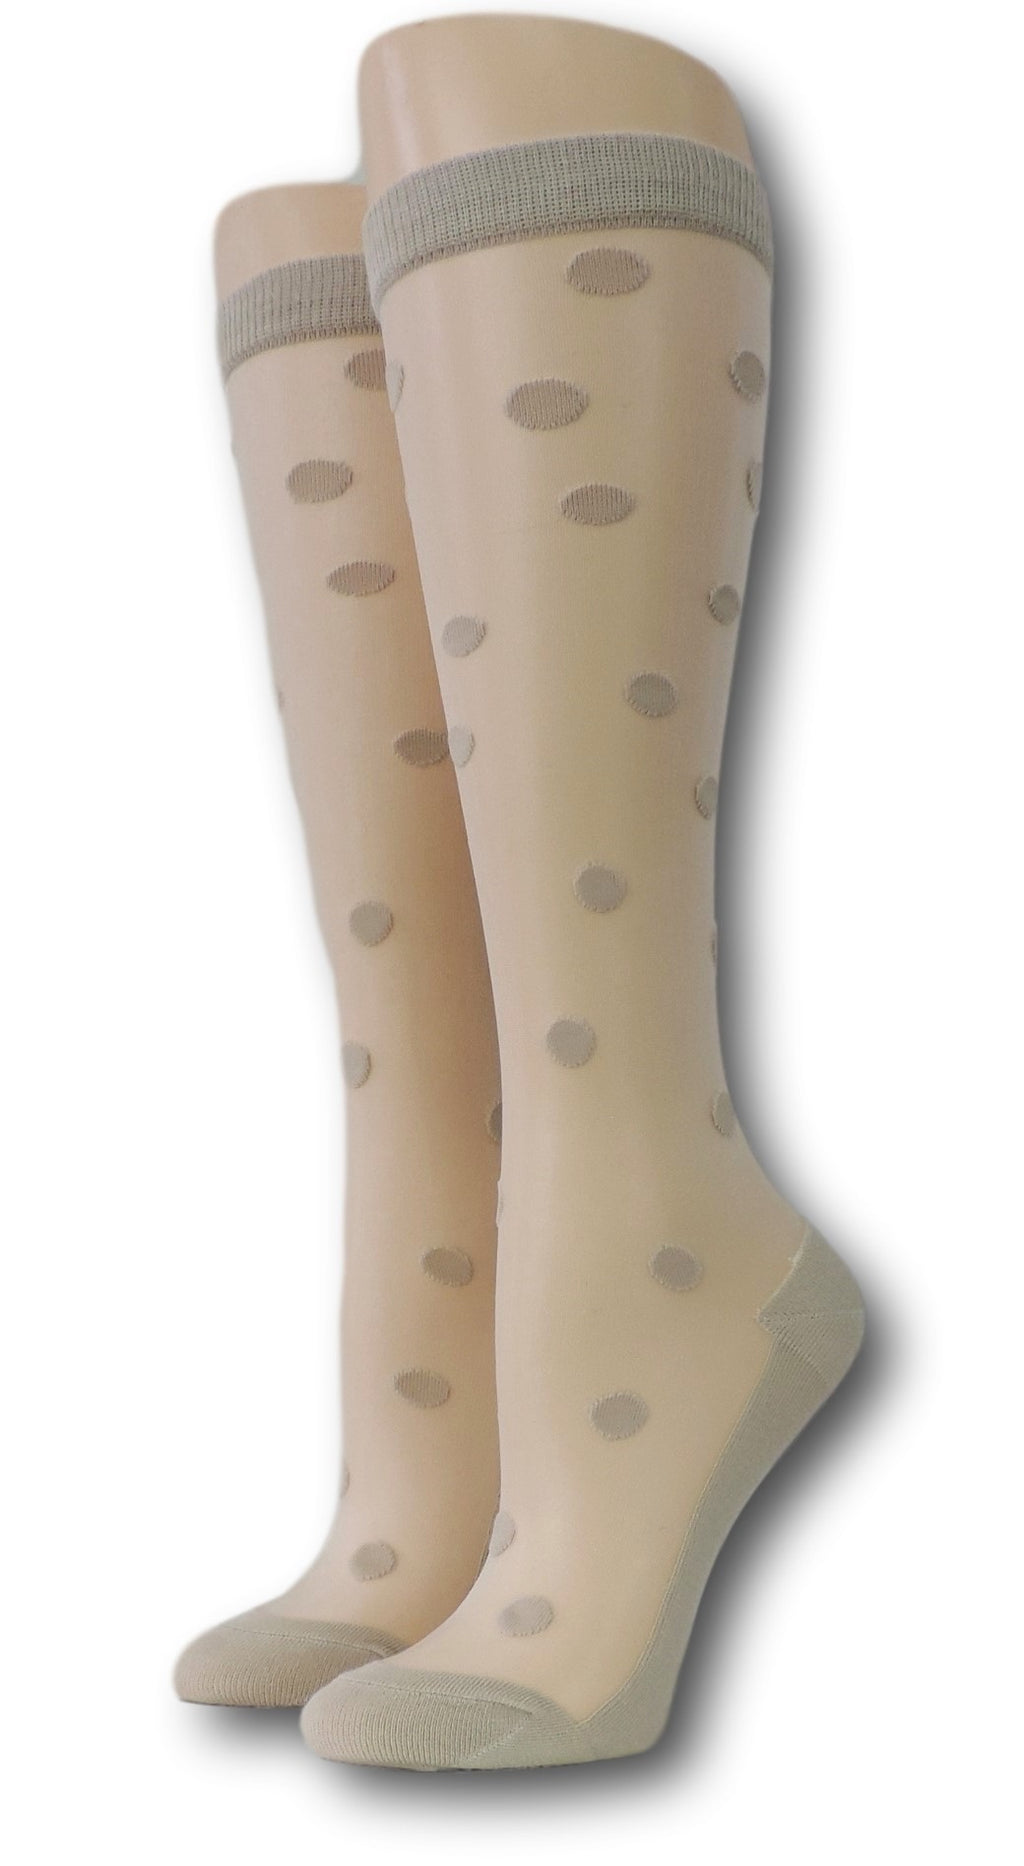 Teal Polka Knee High Sheer Socks